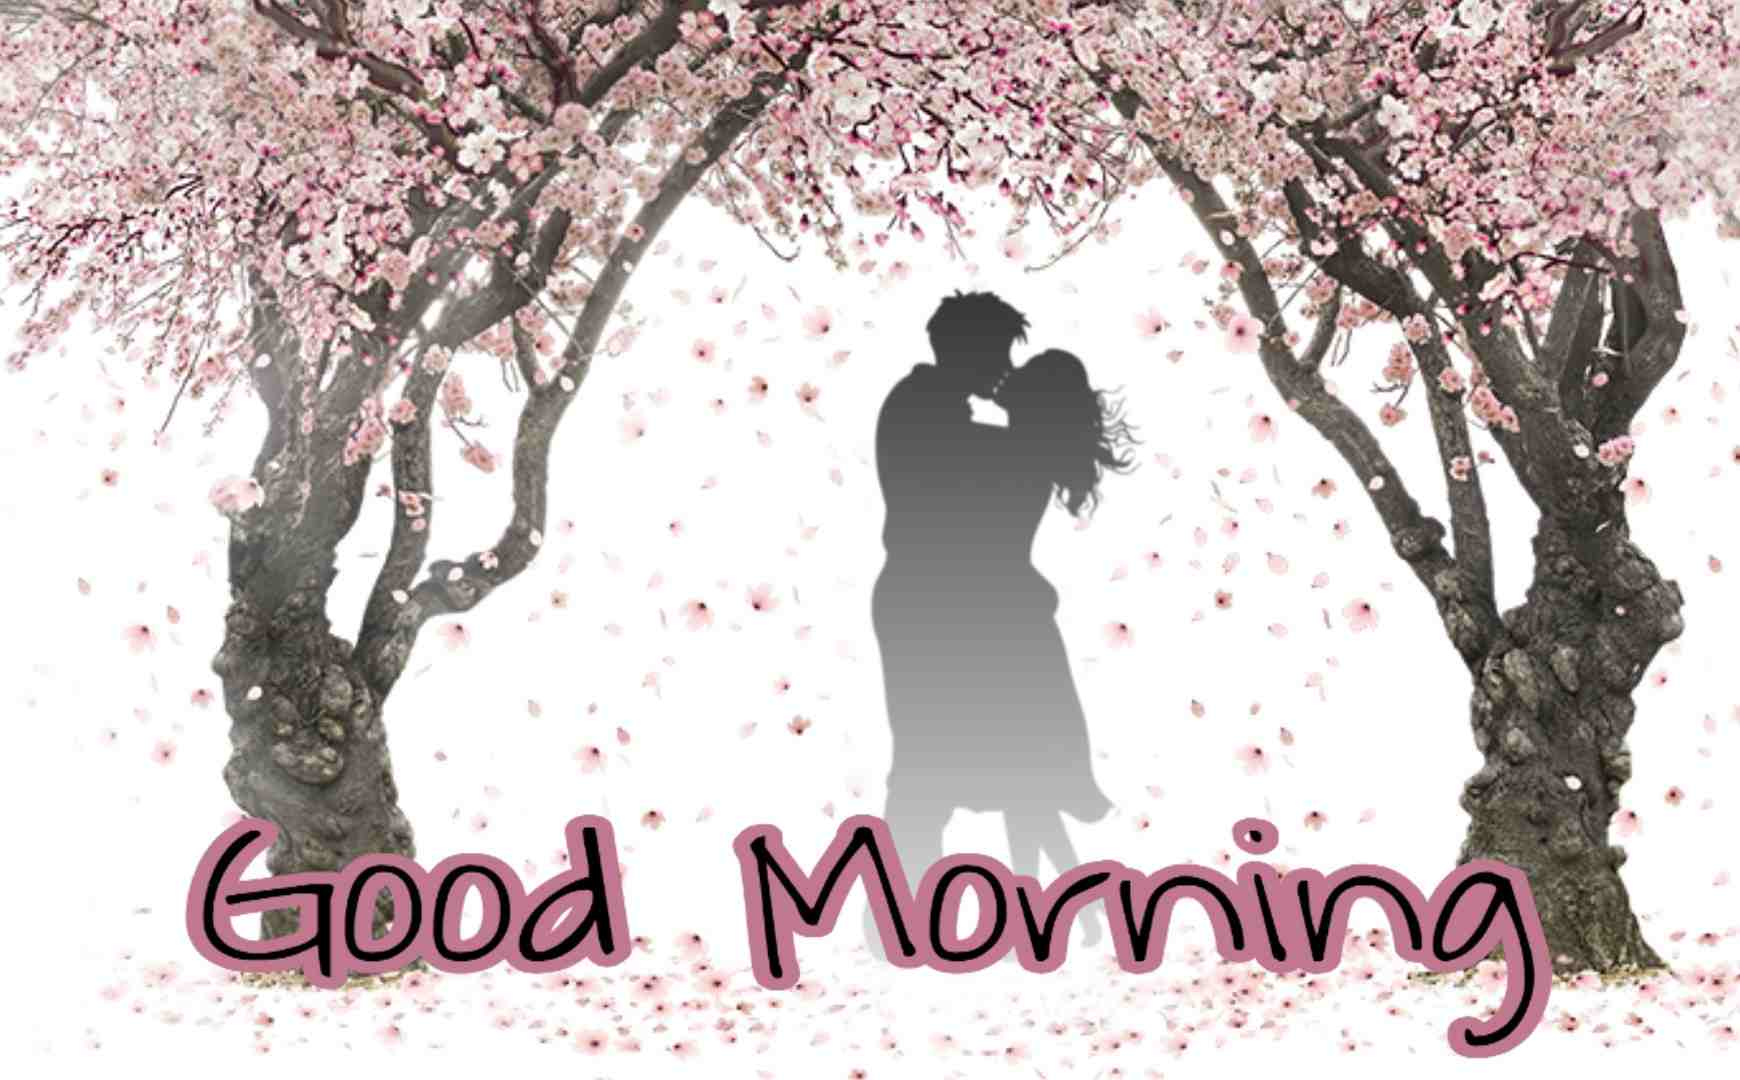 141 Romantic Good Morning Images For Love Couple Hd Best Status Pics